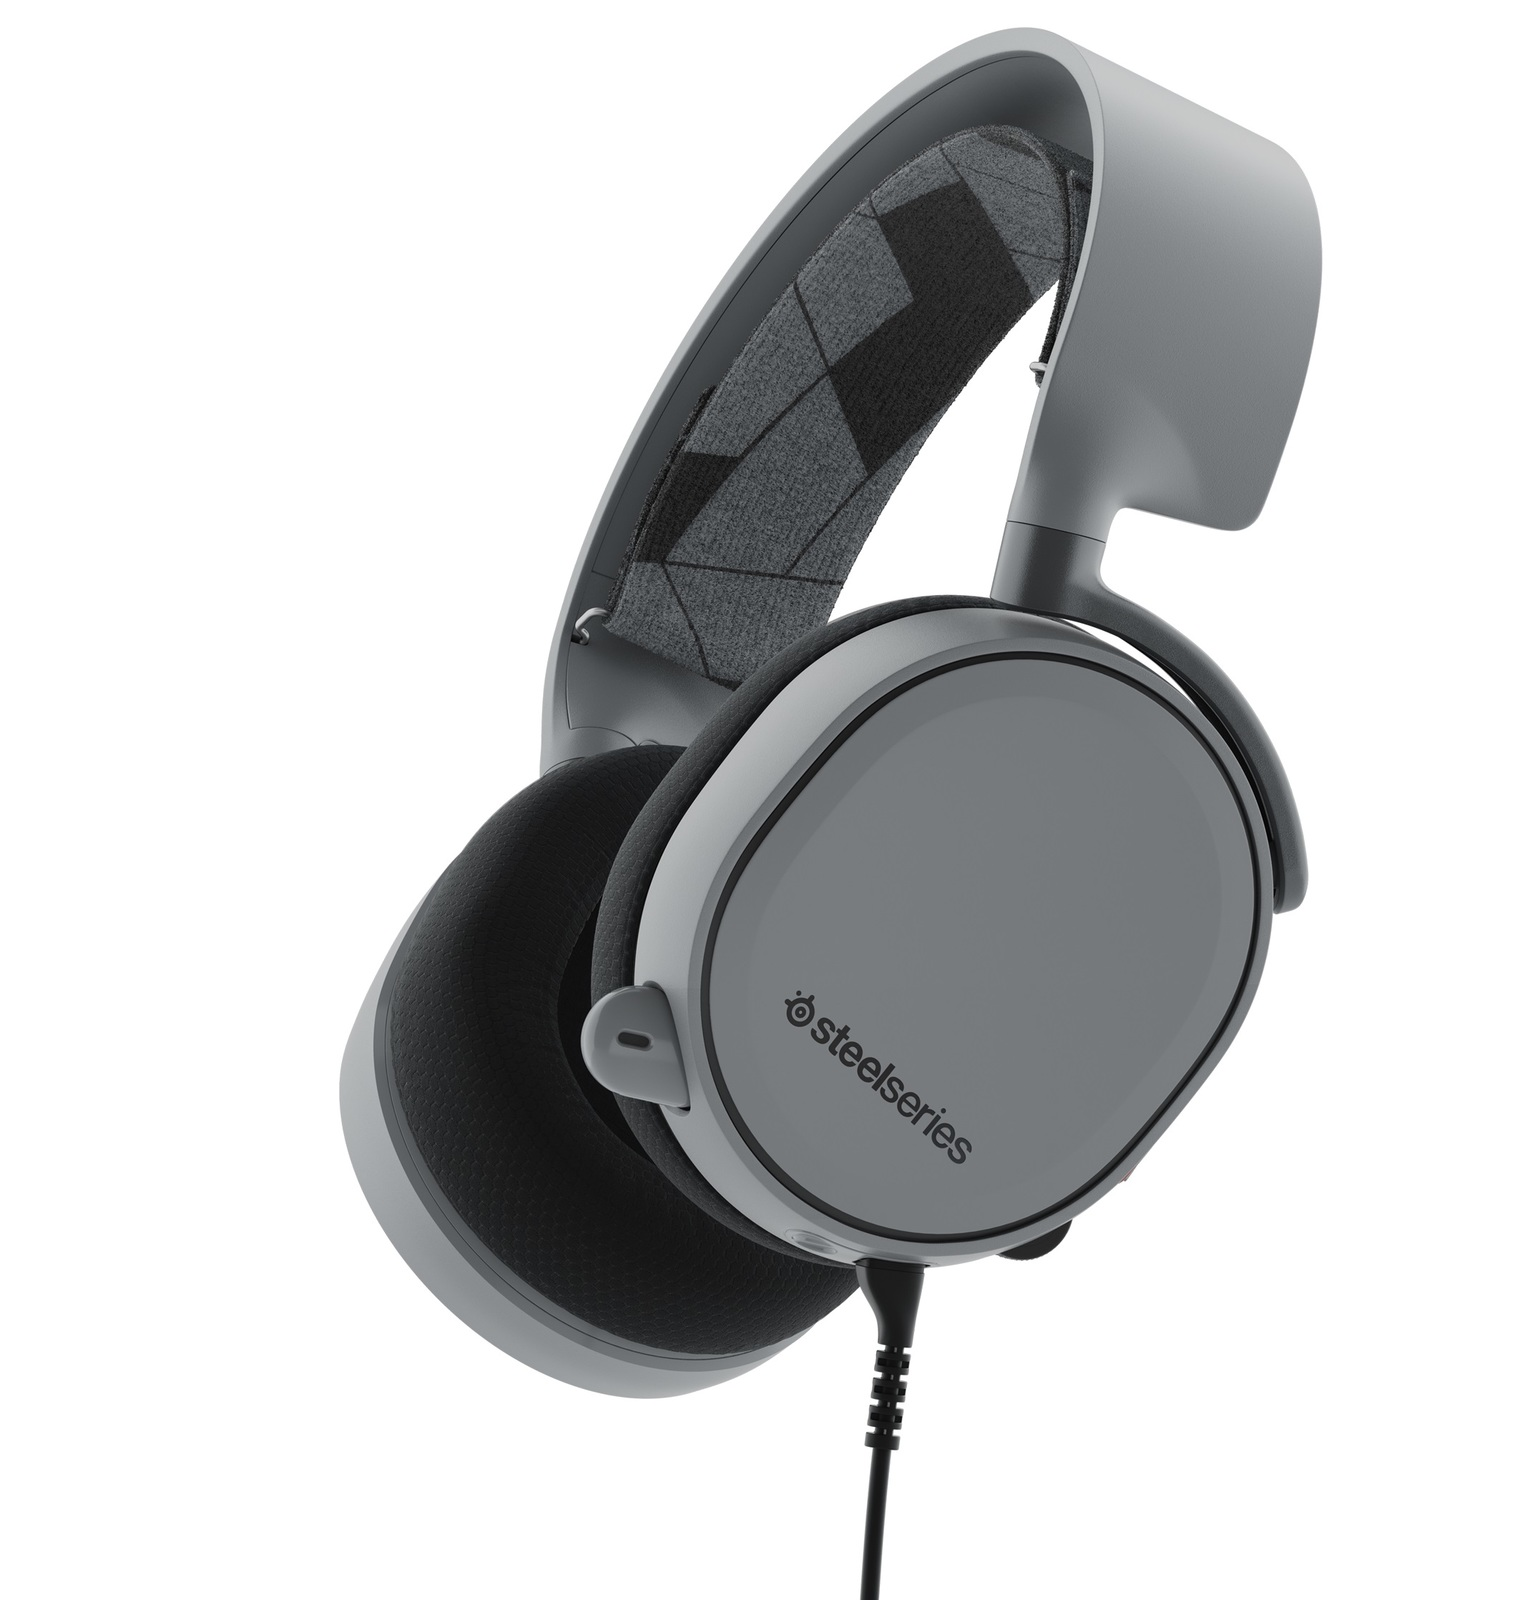 SteelSeries Arctis 3 Wired Gaming Headset (Slate Grey) for PC Games image